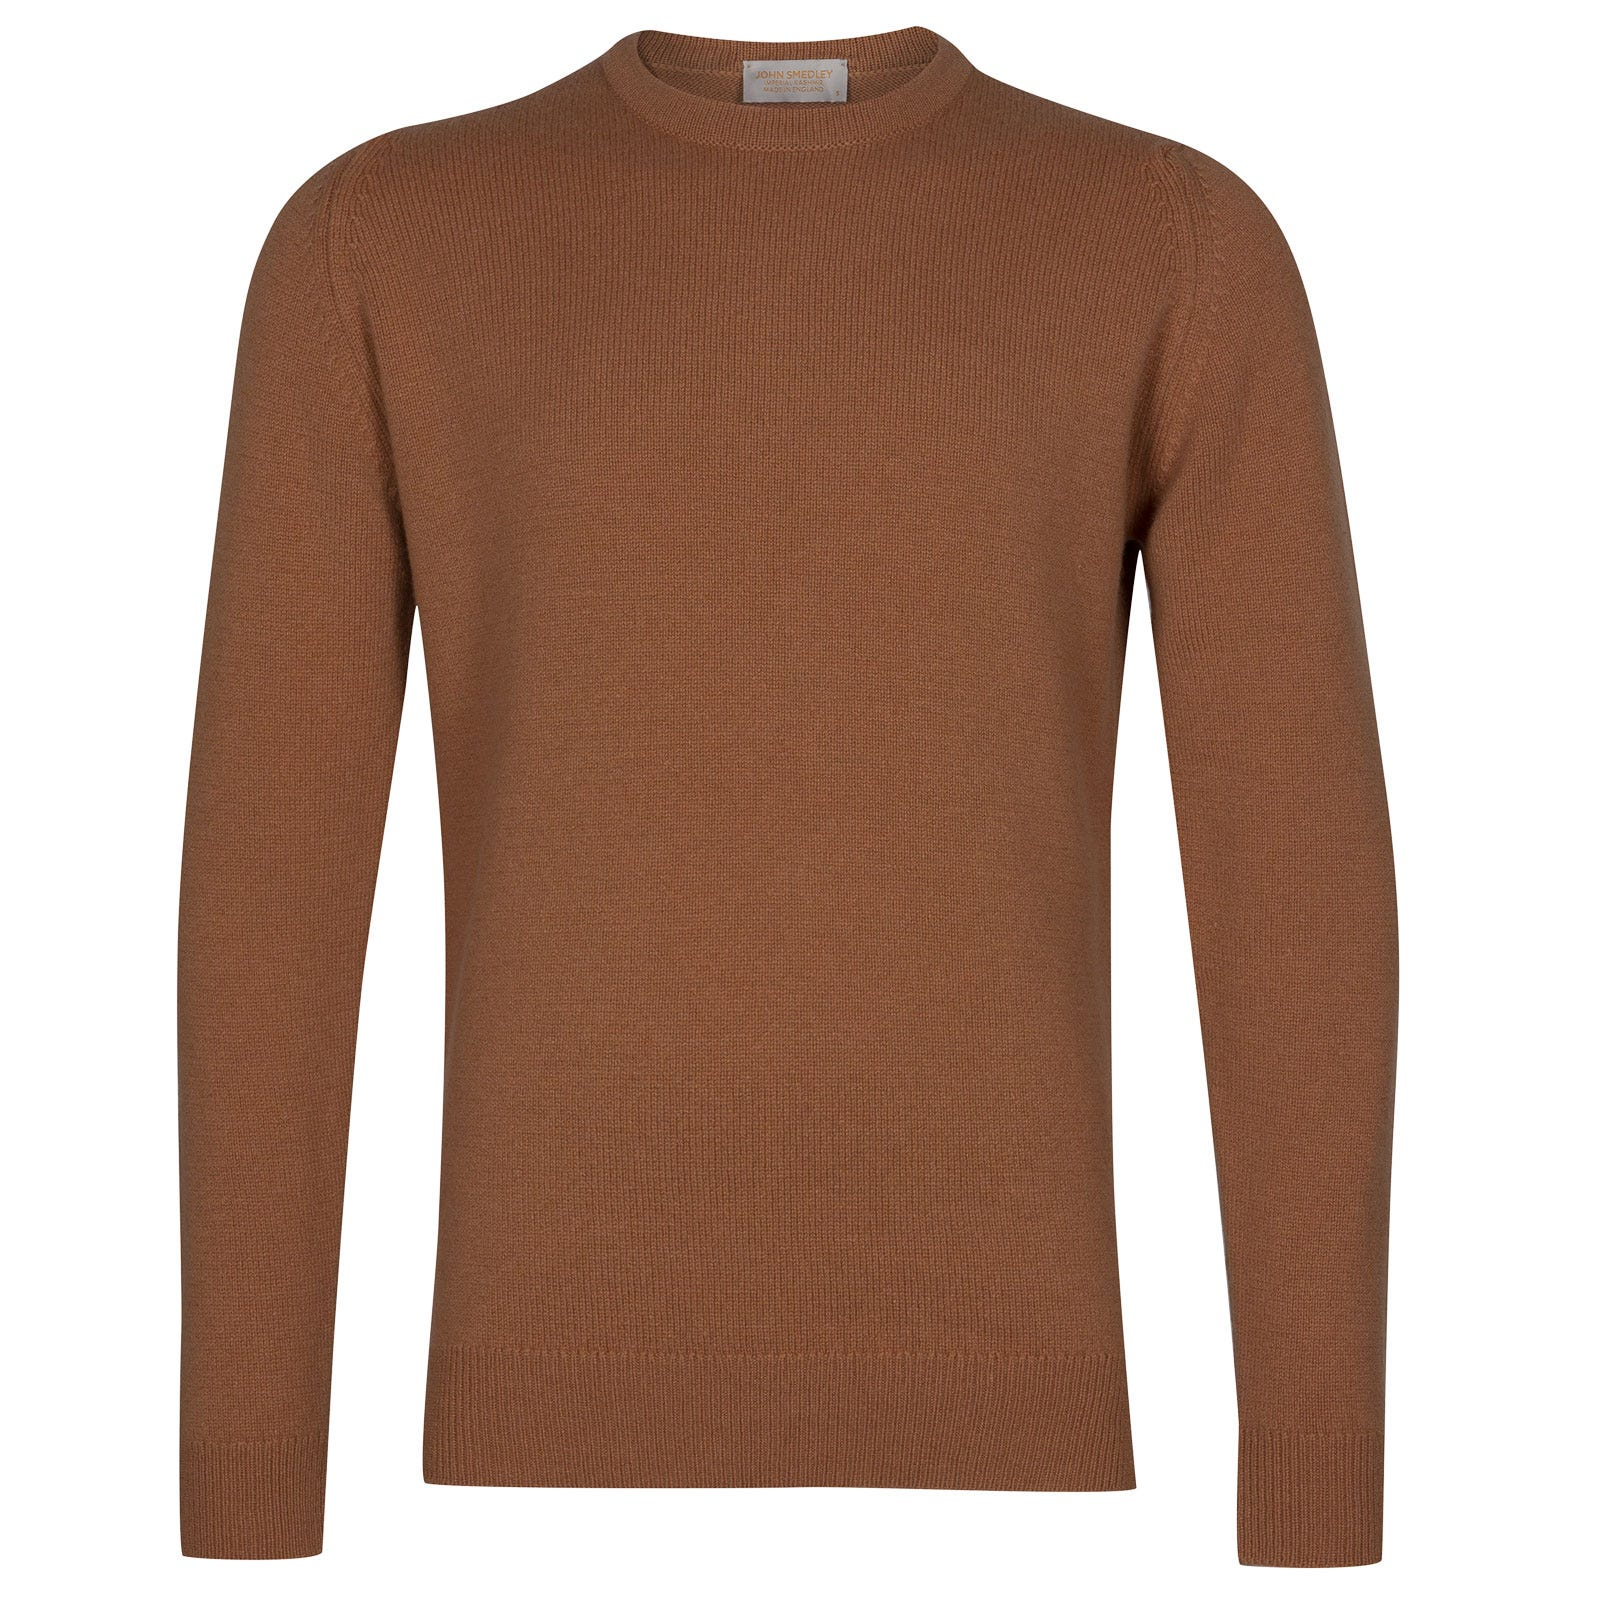 John Smedley Crowford Wool and Cashmere Pullover in Camel-M